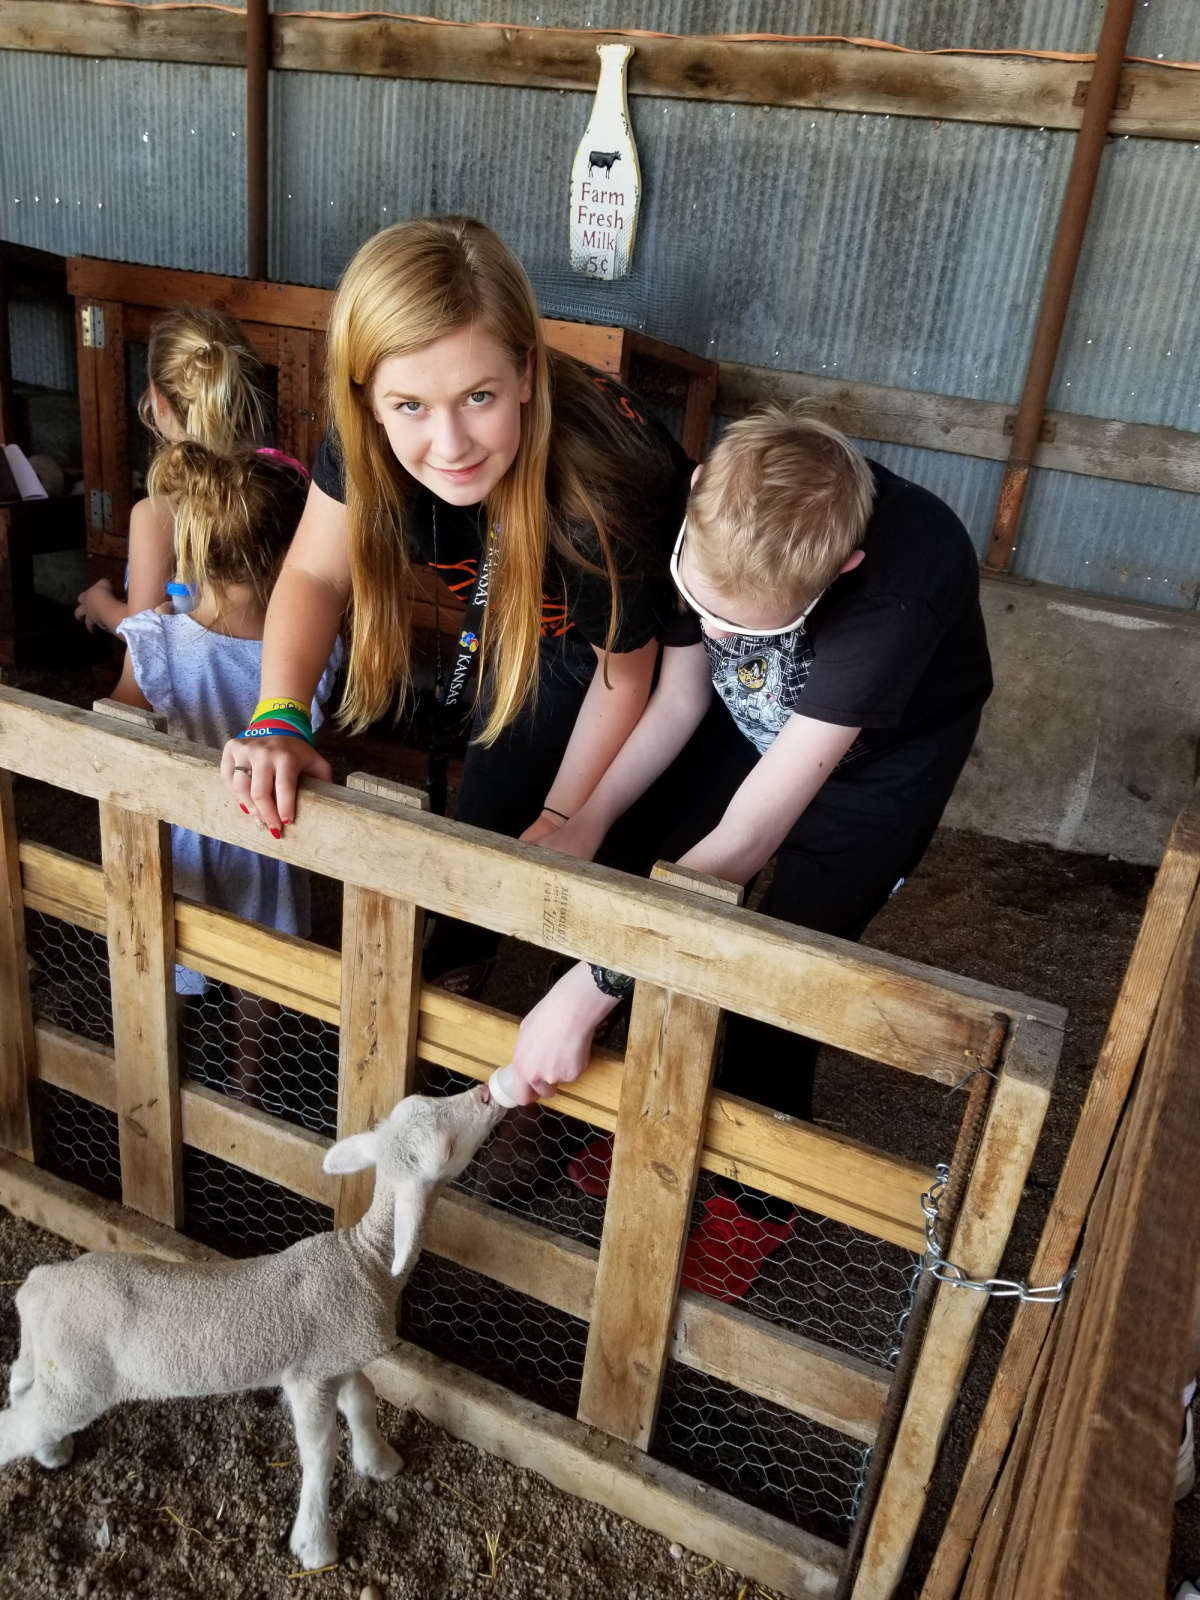 Morgan at work helping Caleb feed lambs.